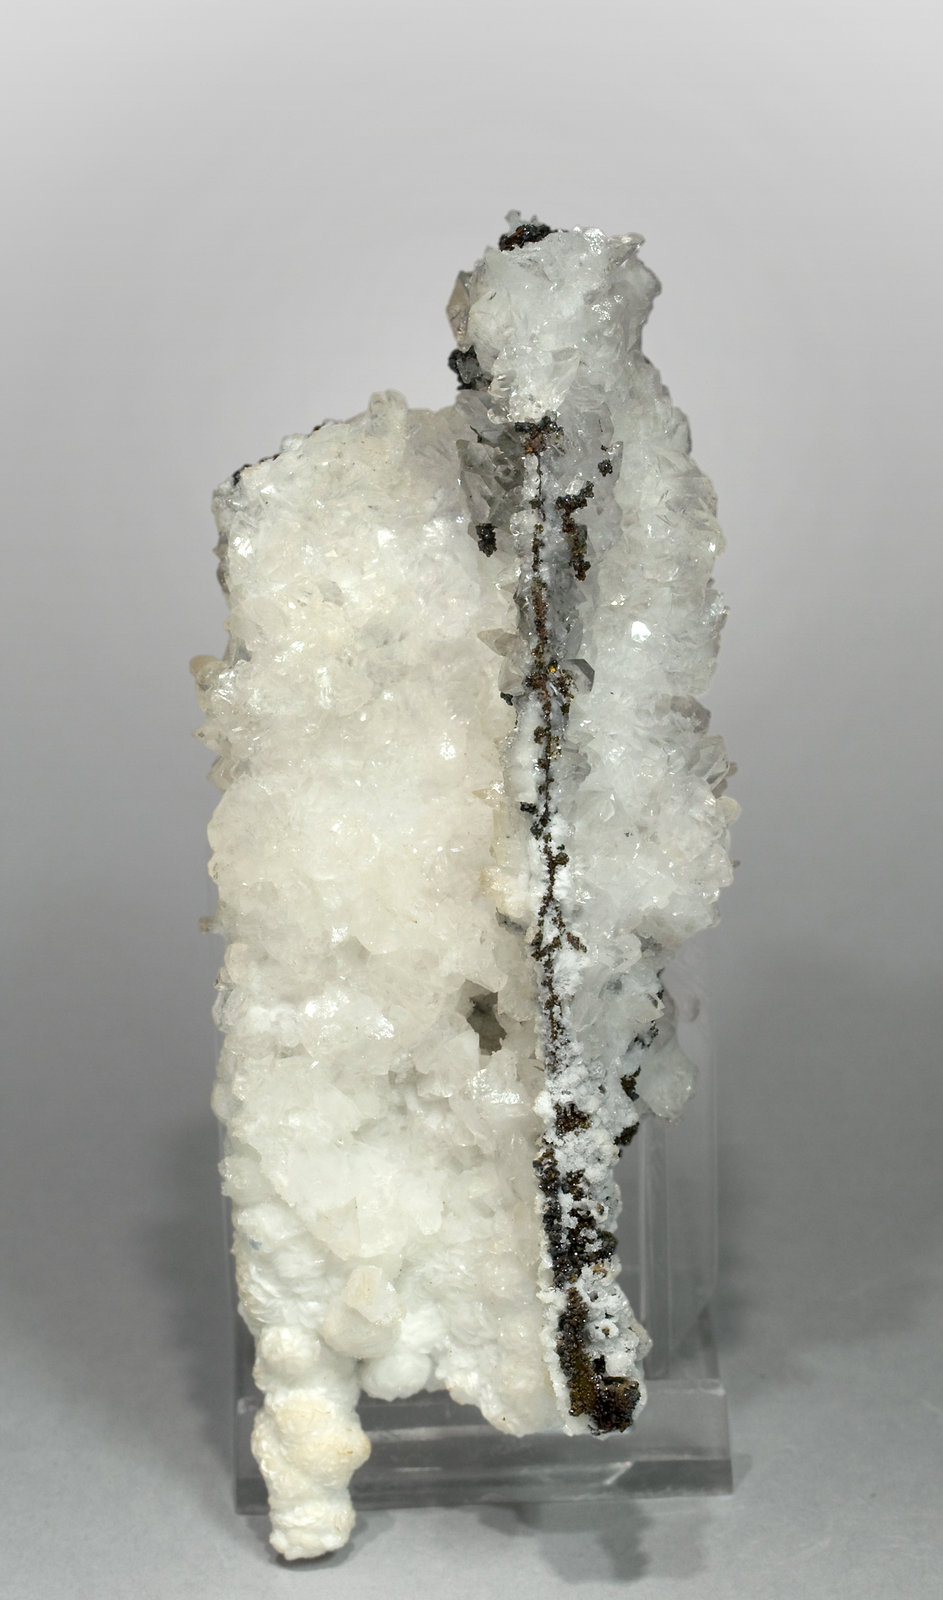 specimens/s_imagesT4/Descloizite-NK86T4r.jpg